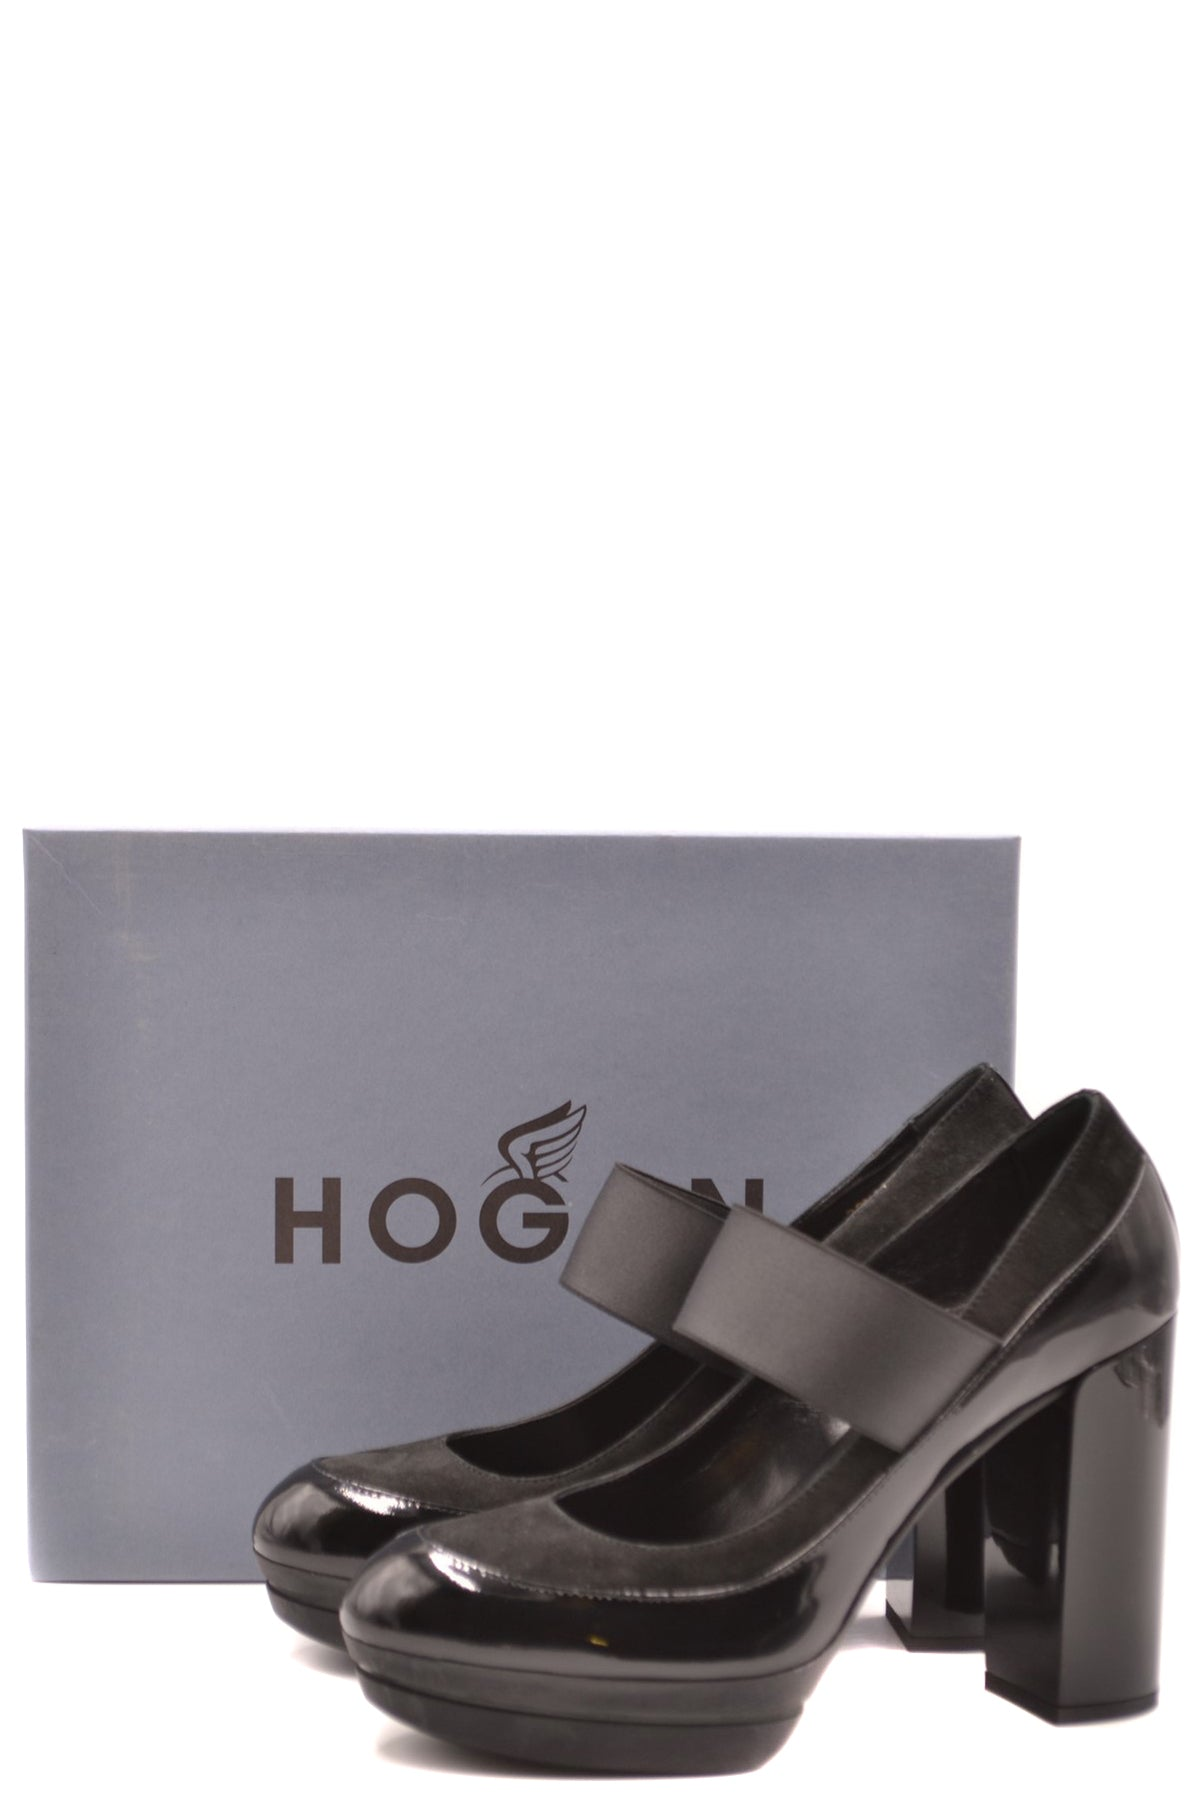 Shoes Hogan--Product Details Manufacturer Part Number: Hxw2990W4107Eub999Year: 2020Composition: Leather 100%Size: EuGender: WomanMade In: ItalySeason: Fall / WinterType Of Accessory: ShoesMain Color: BlackTerms: New With Label-Keyomi-Sook